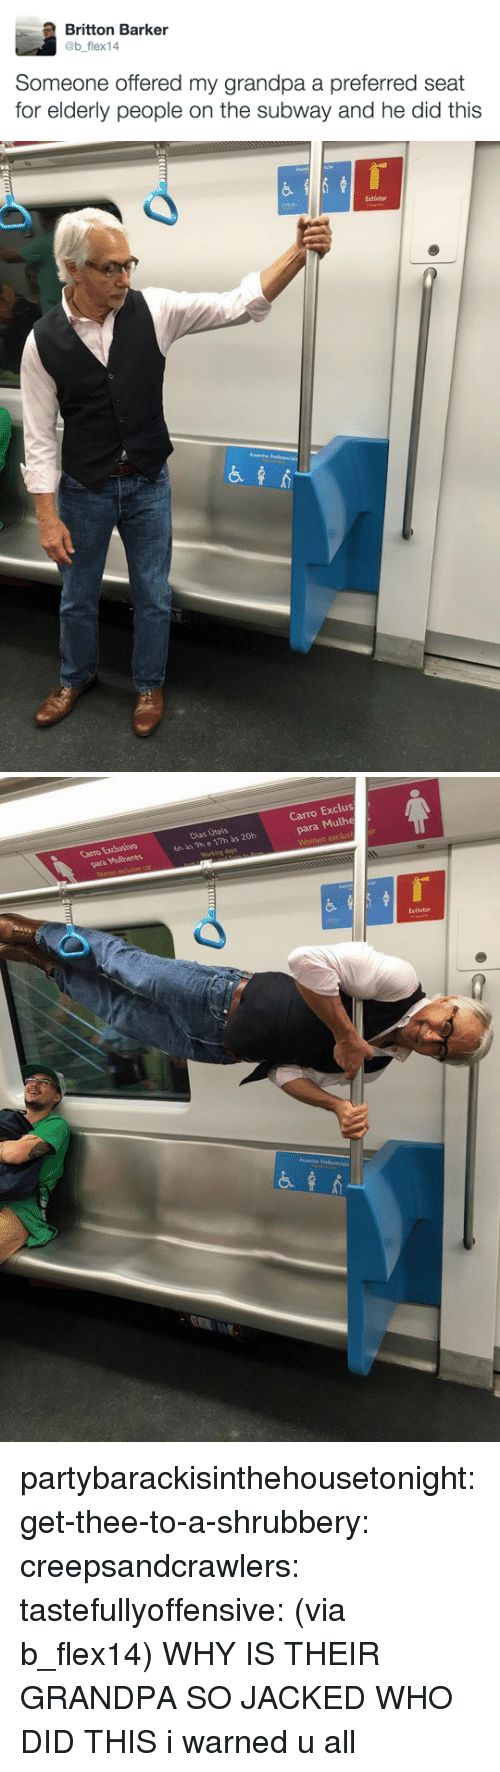 jacked: Britton Barker  @b flex14  Someone offered my grandpa a preferred seat  for elderly people on the subway and he did this   Extintor   Carro Exclus  para Mulhe  Carro Excusivo  Dias Úteis  6h às 9h e 17h às 20h  Extintor partybarackisinthehousetonight: get-thee-to-a-shrubbery:  creepsandcrawlers:  tastefullyoffensive:  (via b_flex14)  WHY IS THEIR GRANDPA SO JACKED WHO DID THIS    i warned u all